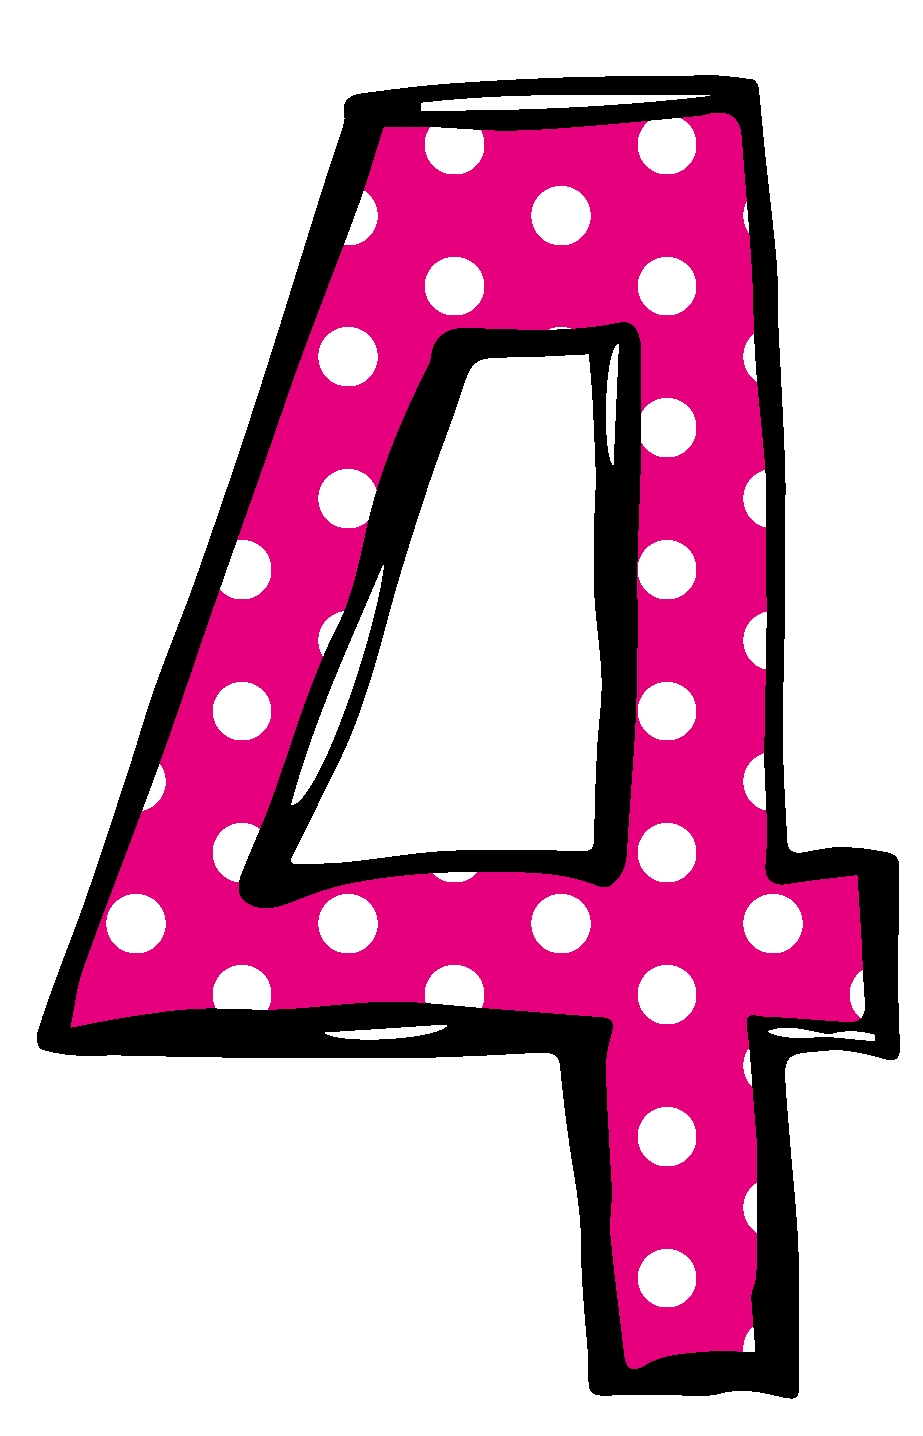 Pink Number 3 Clipart - Clipart Kid